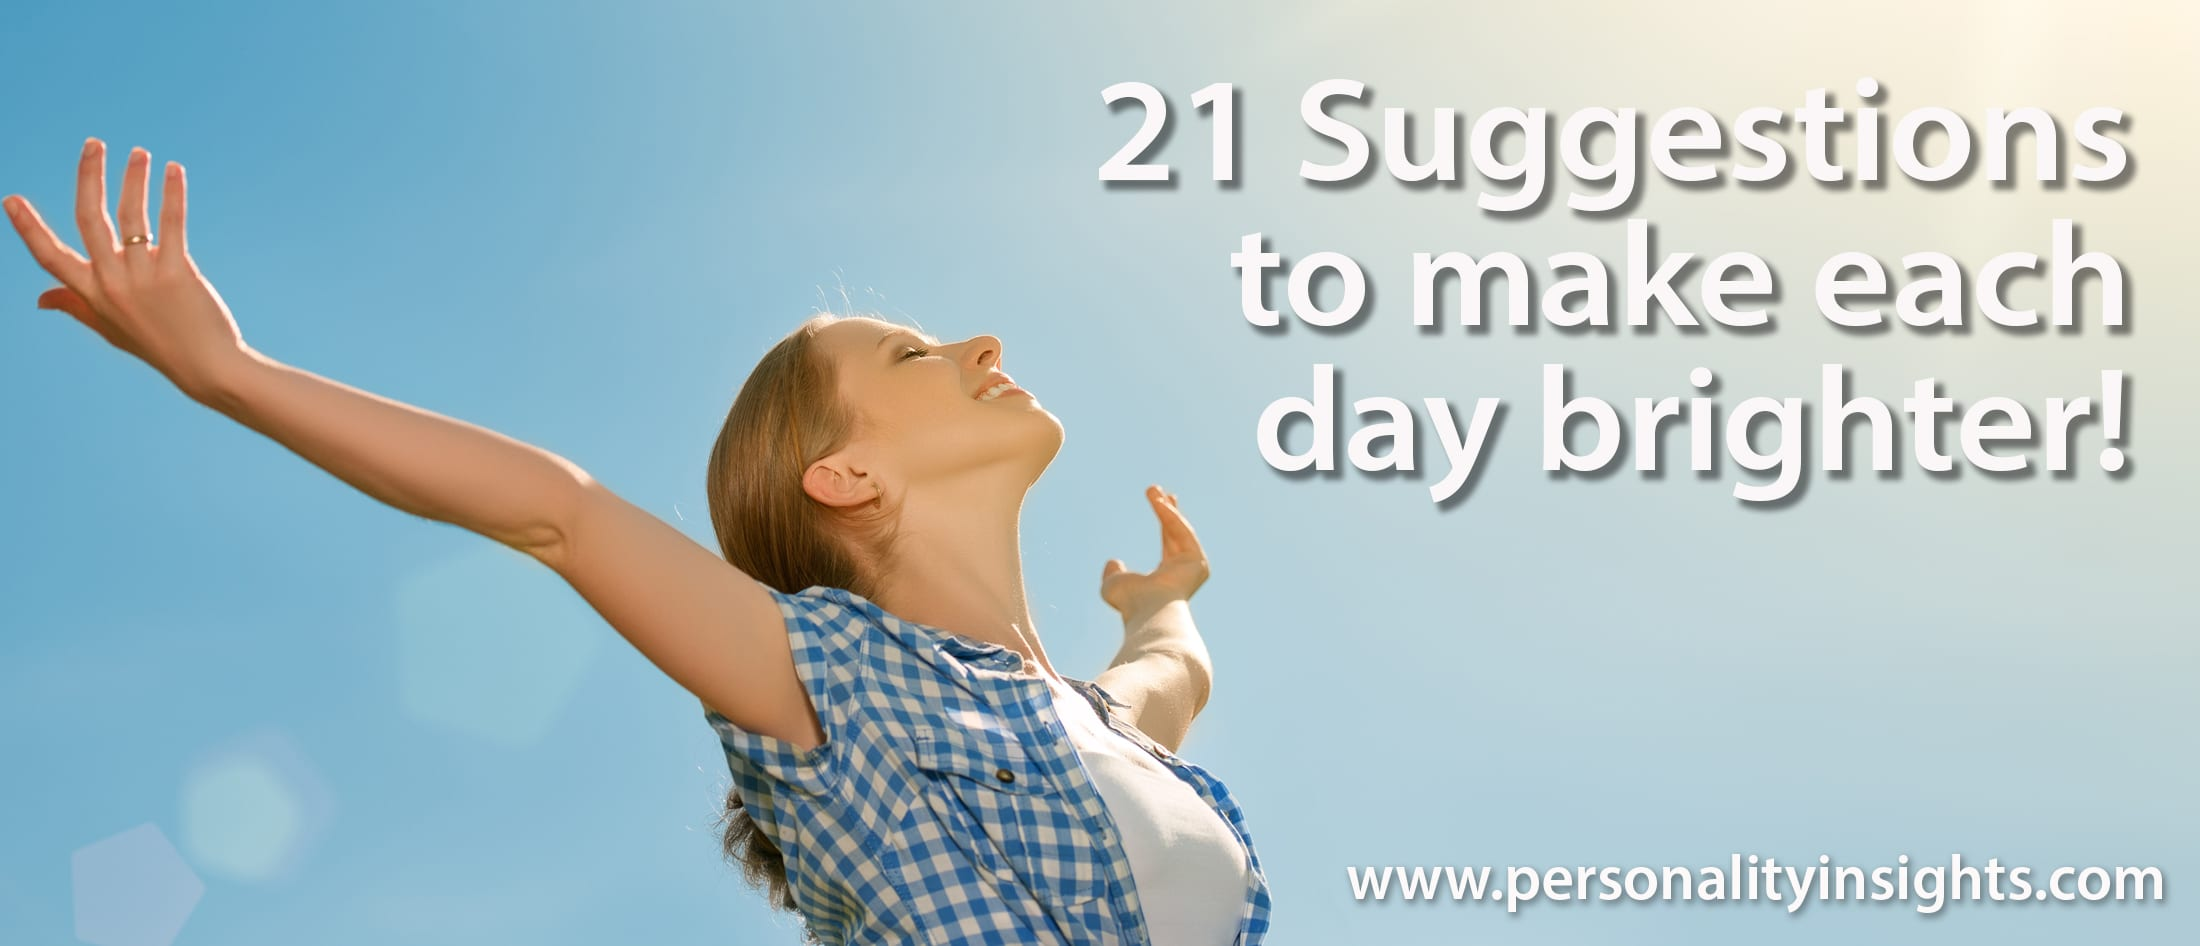 Tip: 21 Suggestions to make each day brighter!